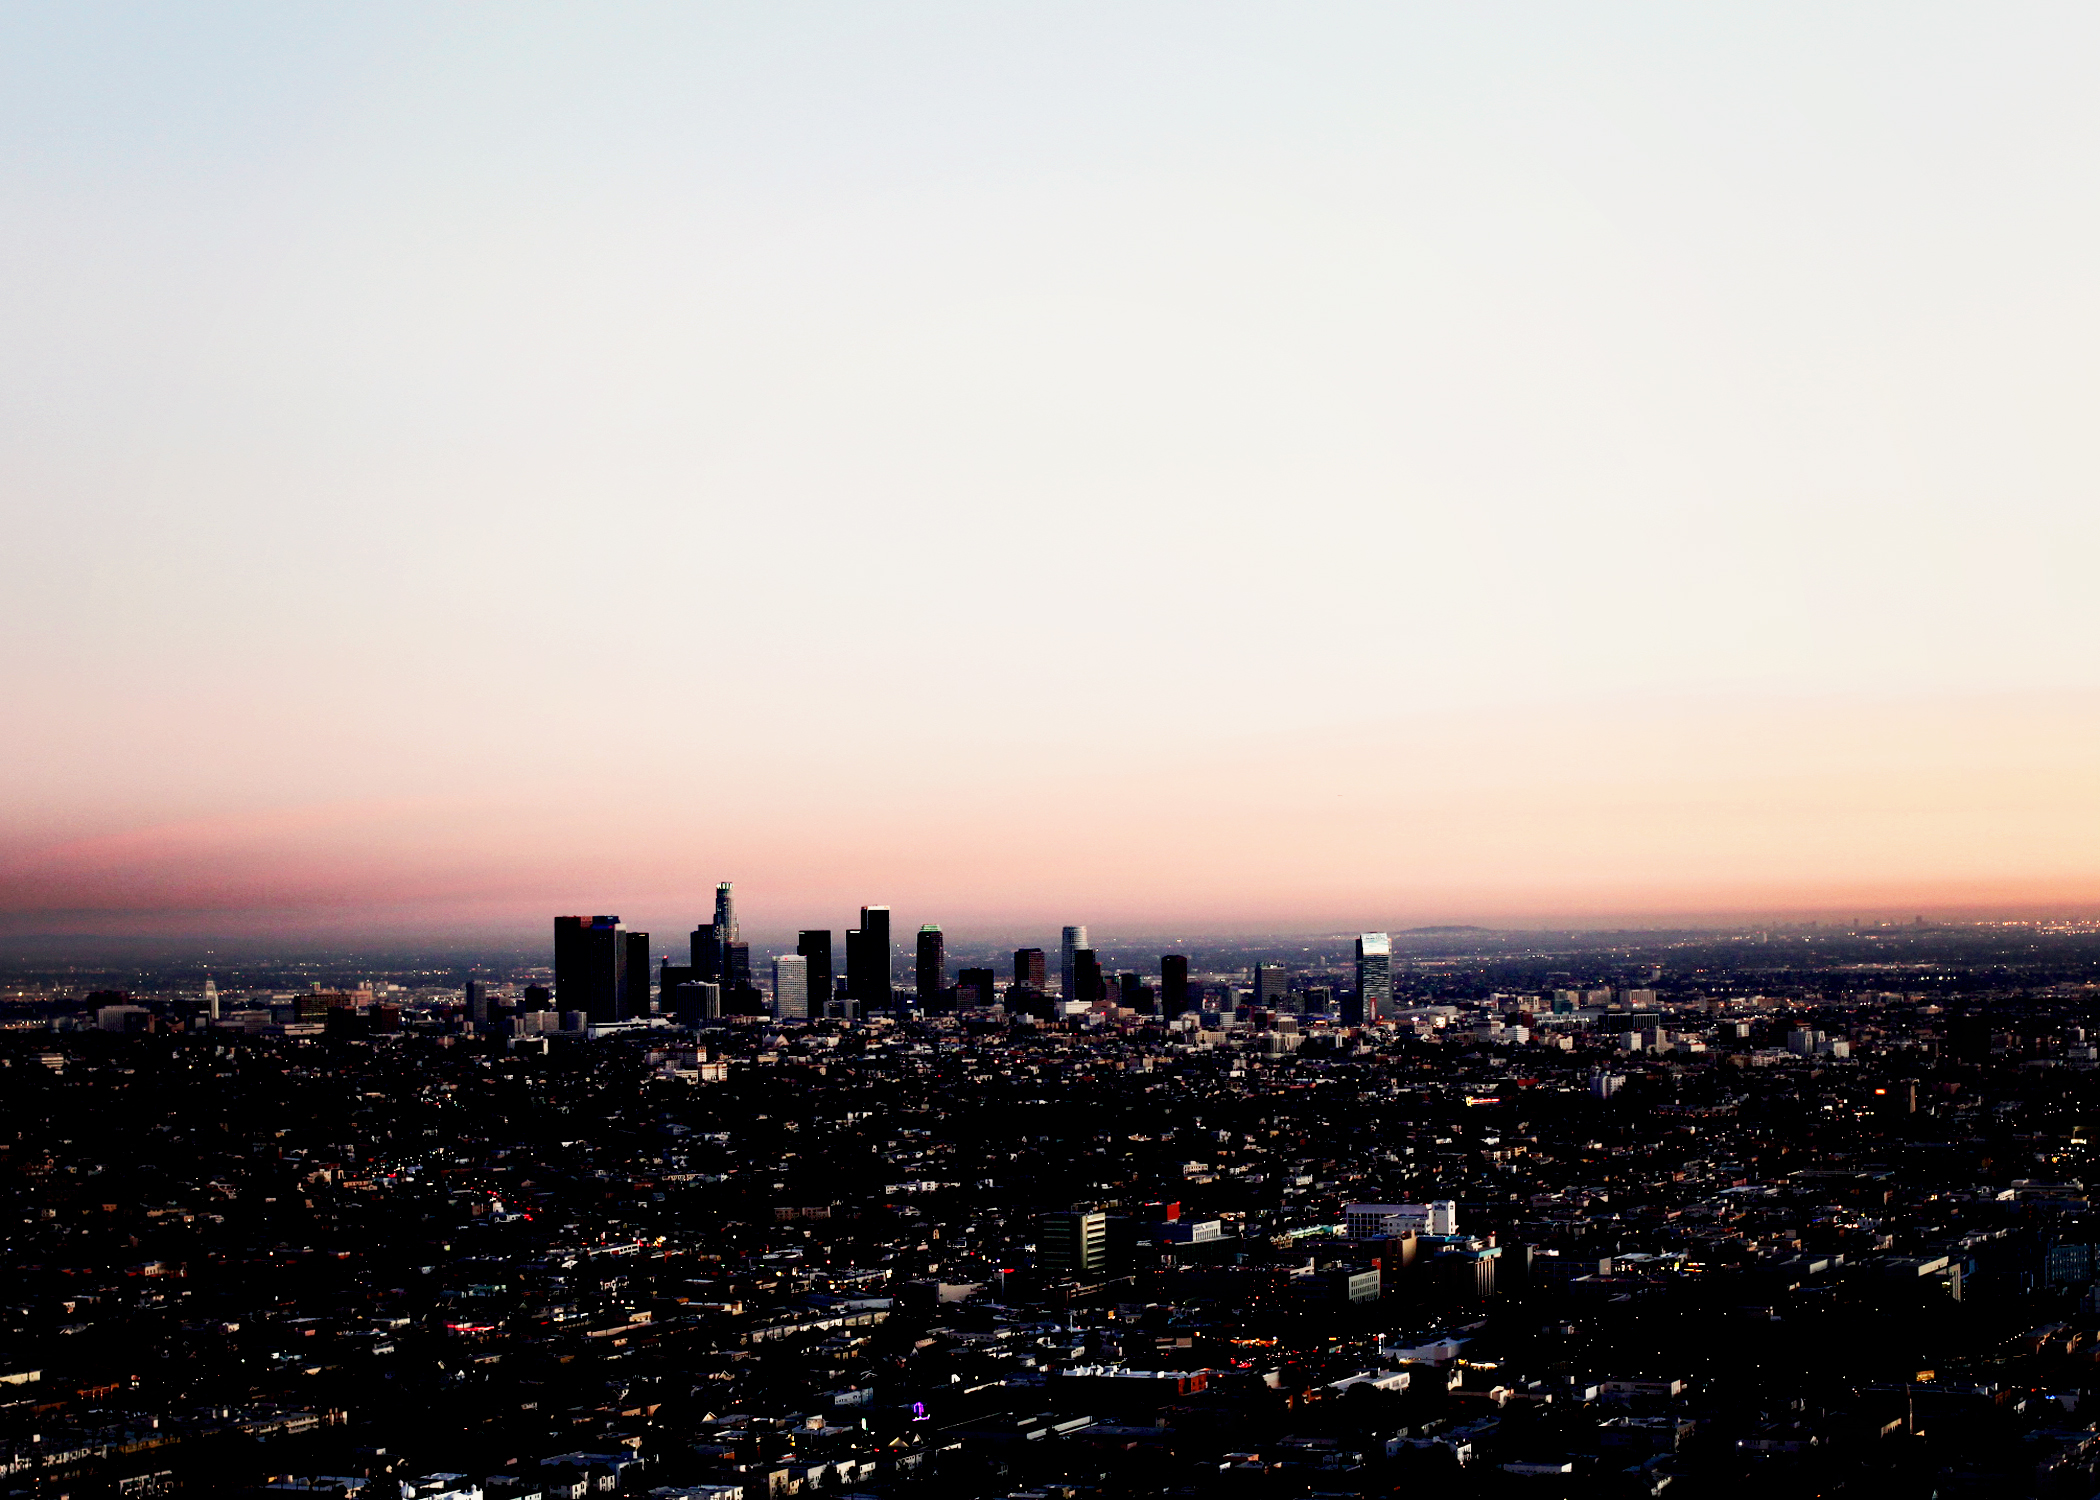 1000+ images about City Lights on Pinterest | Photographs ...